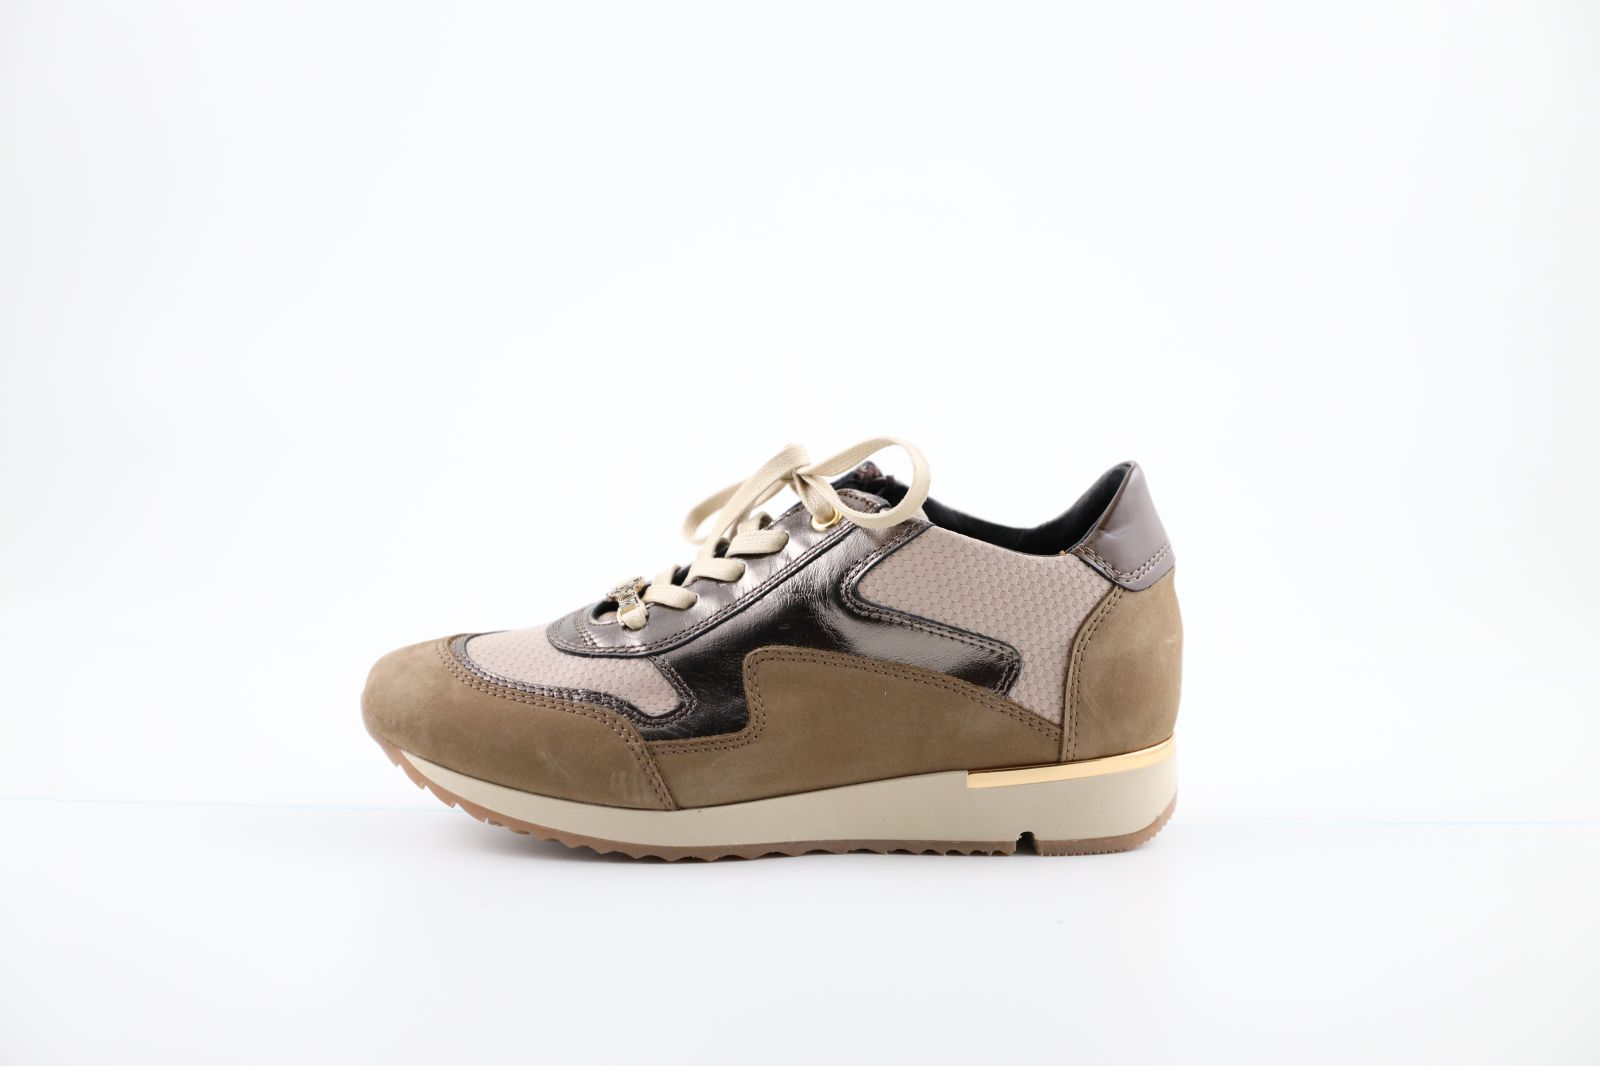 DL Sport Sneackers Taupe/Bronze dames (Quito - 4817) - Marques à Suivre